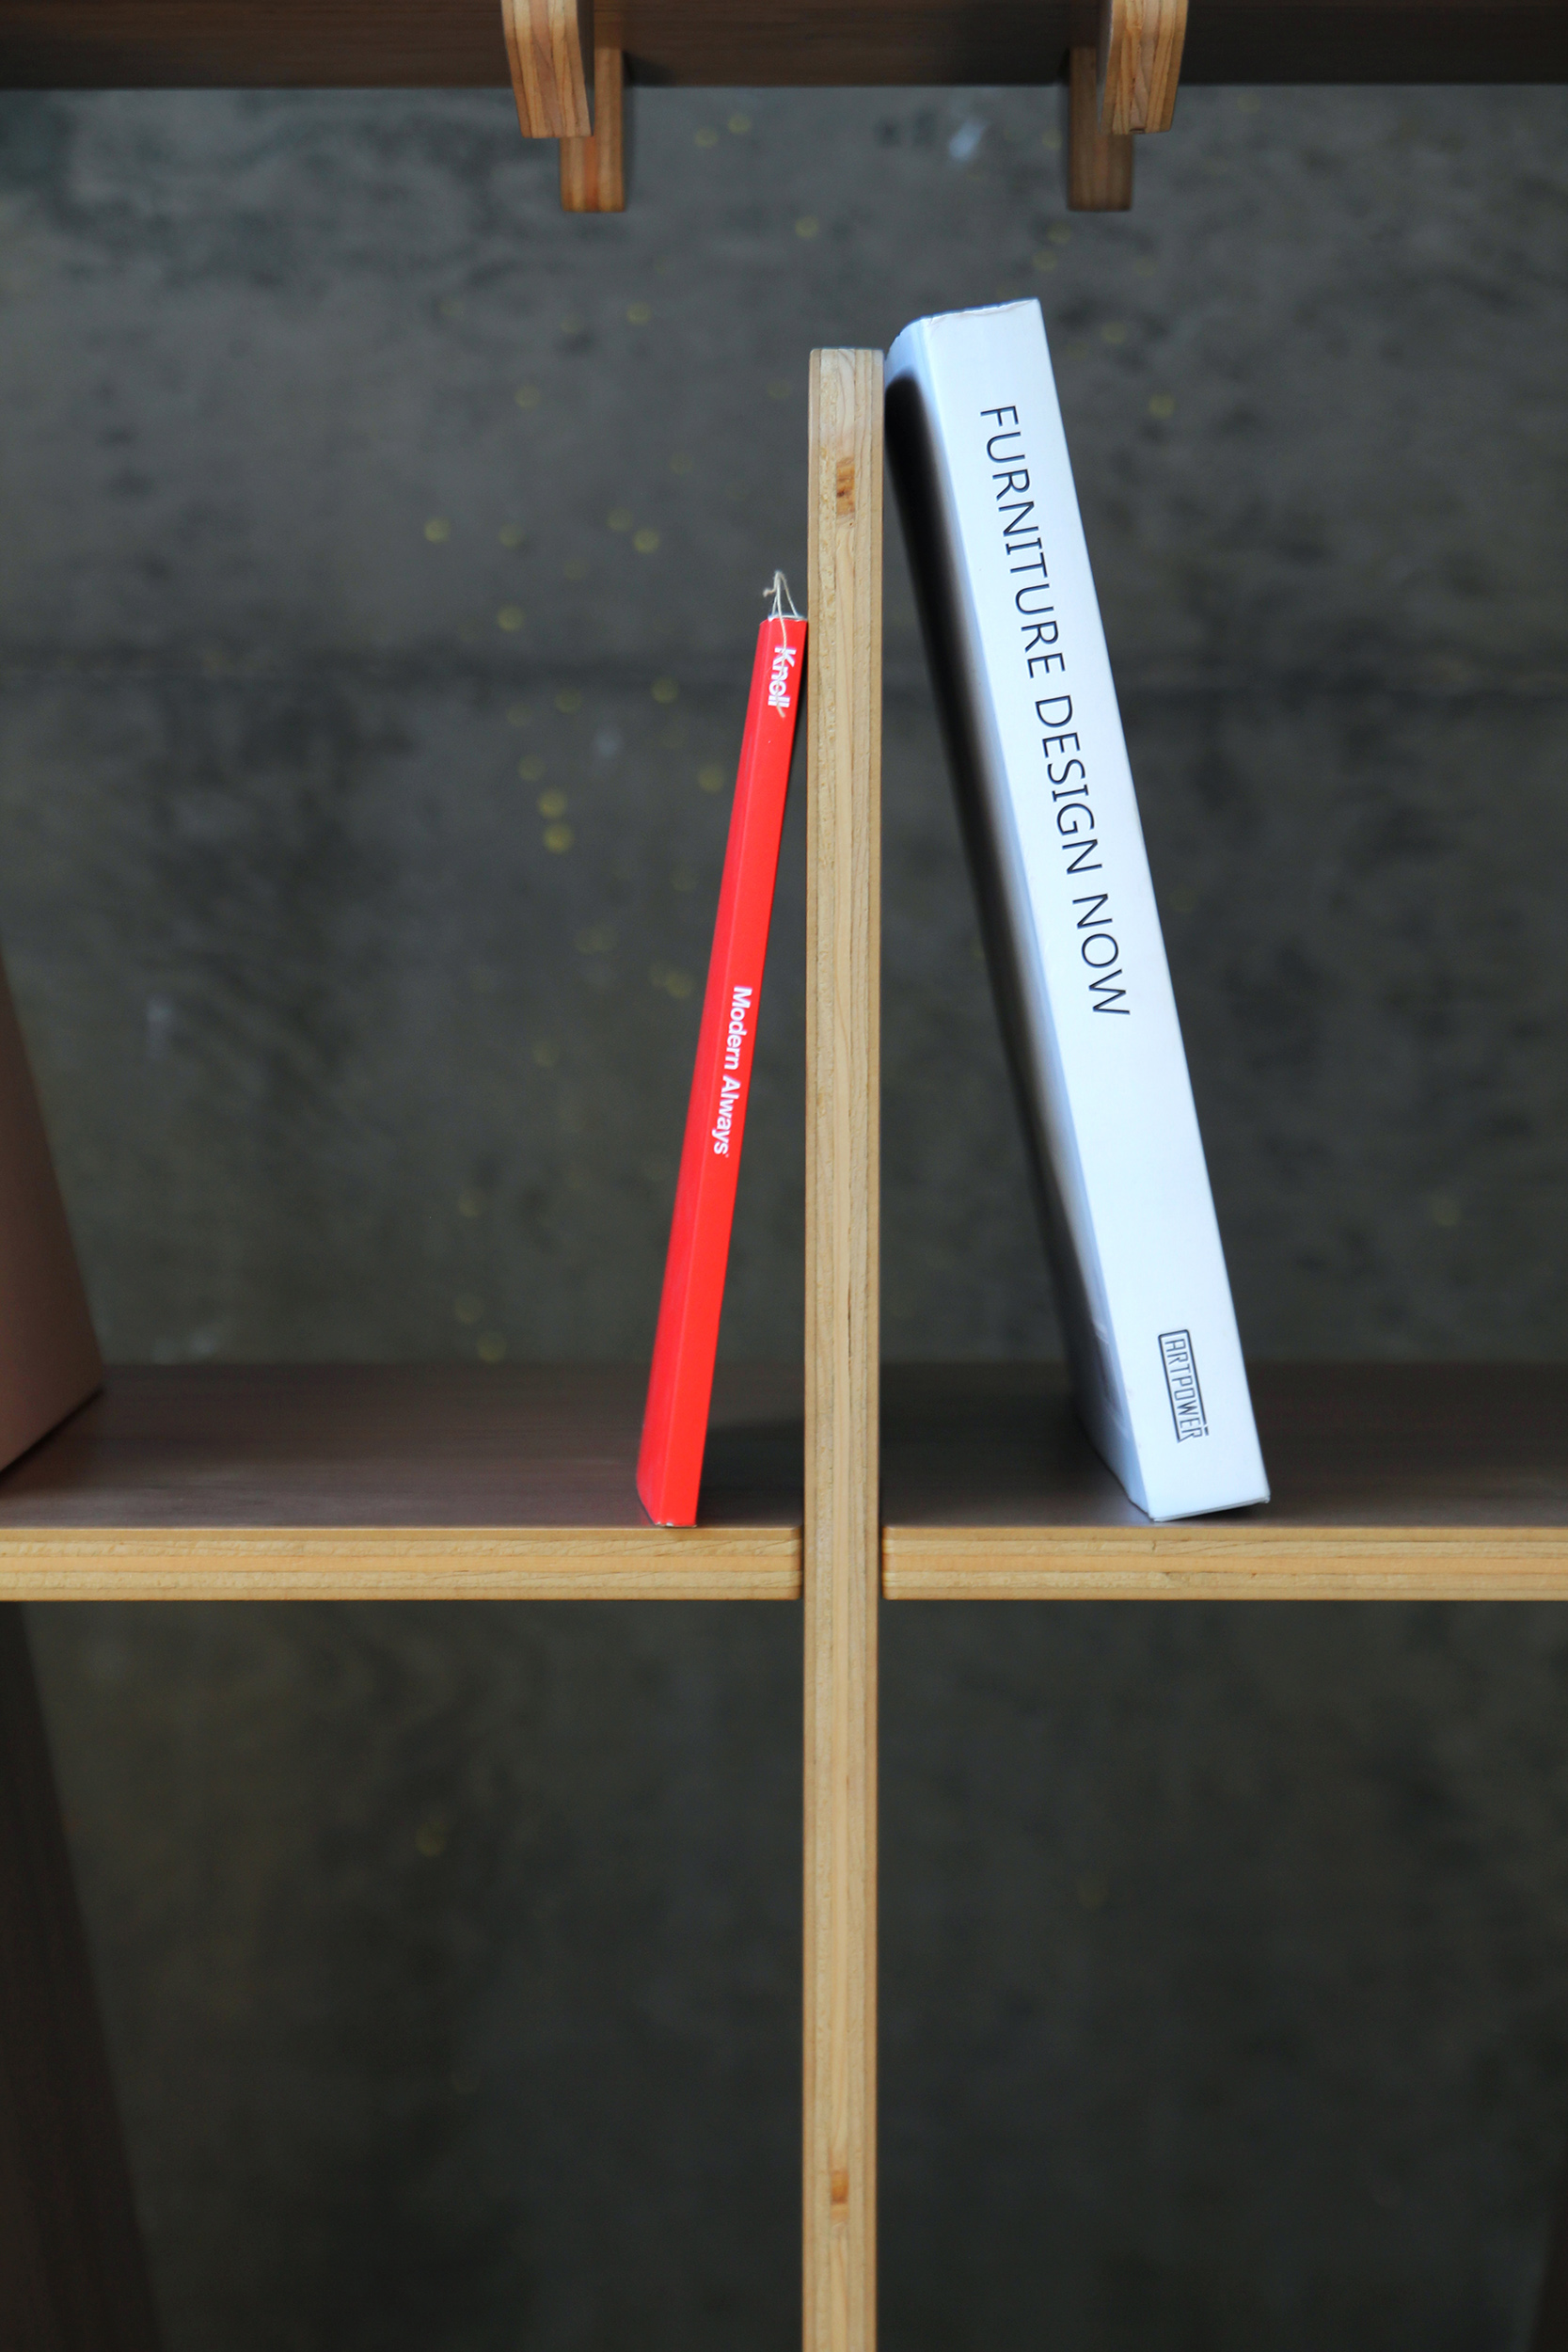 The LINE shelving system by FIGURON